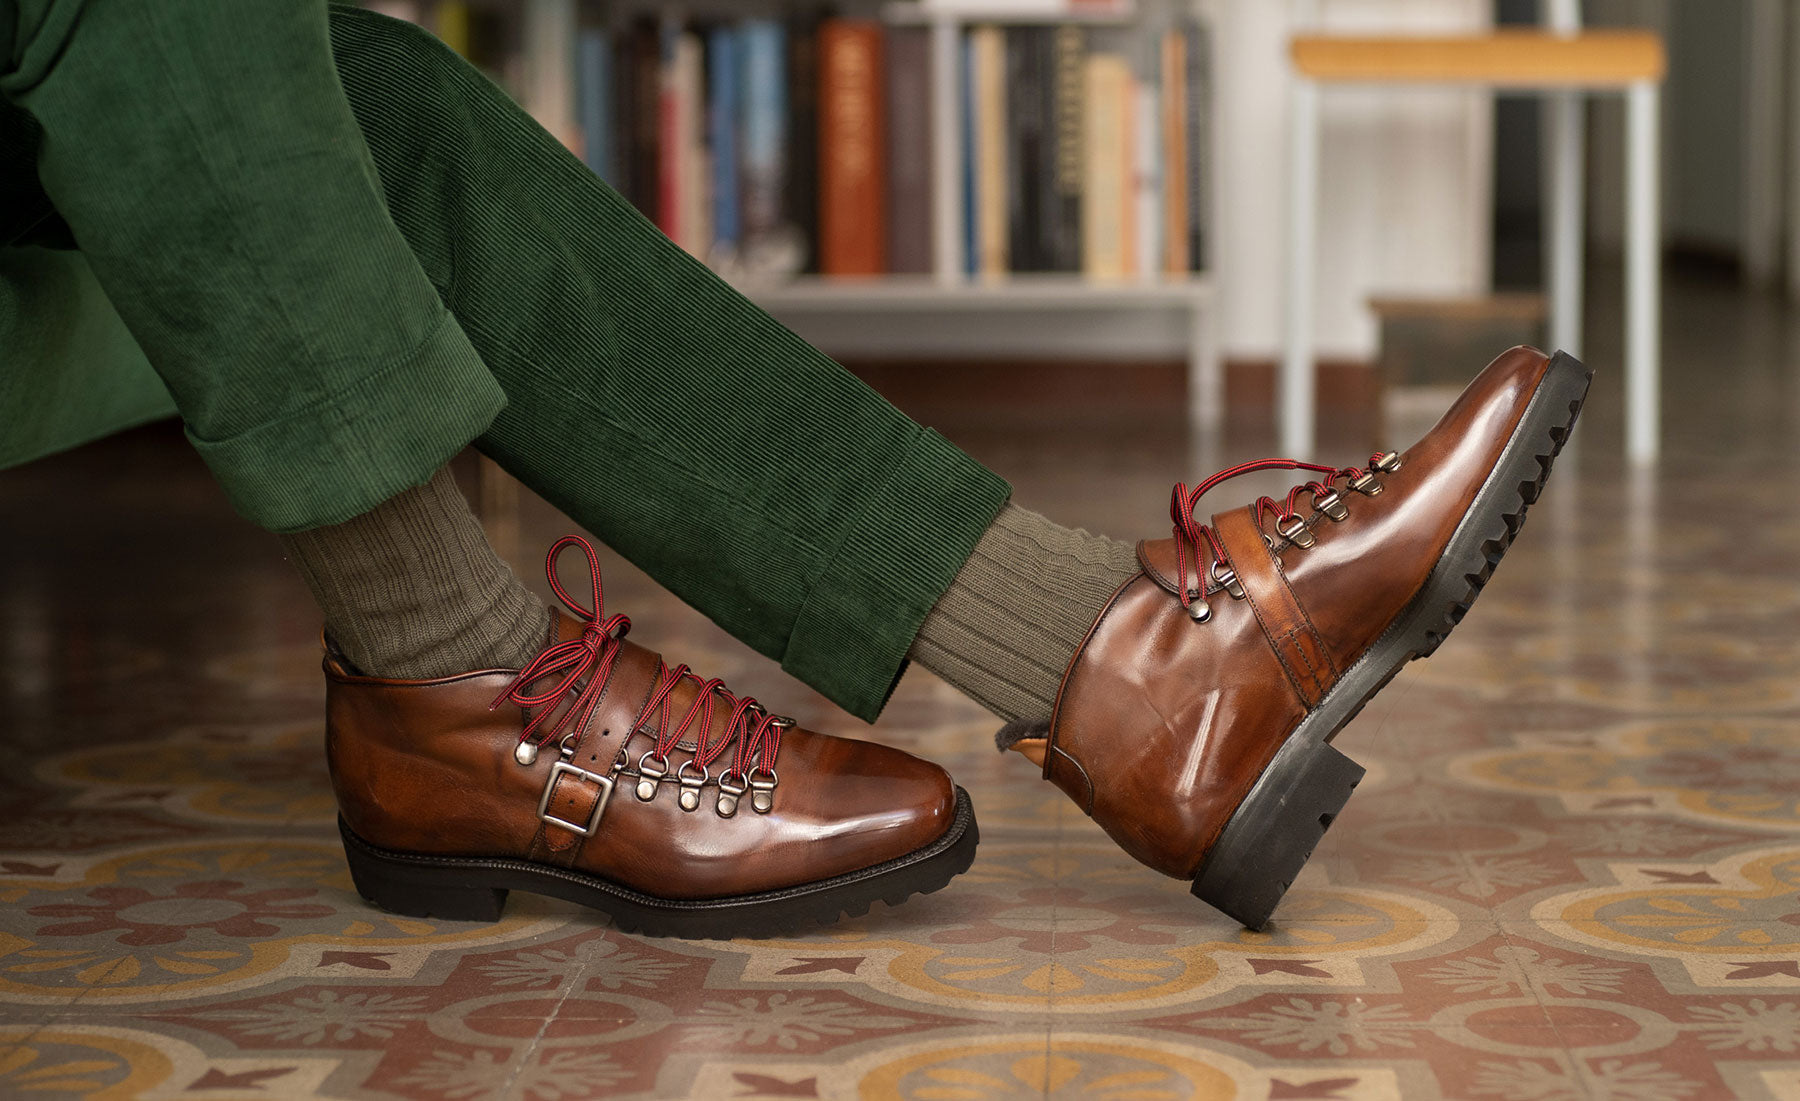 Borcego Mountain Boots by Norman Vilalta Bespoke Shoemakers